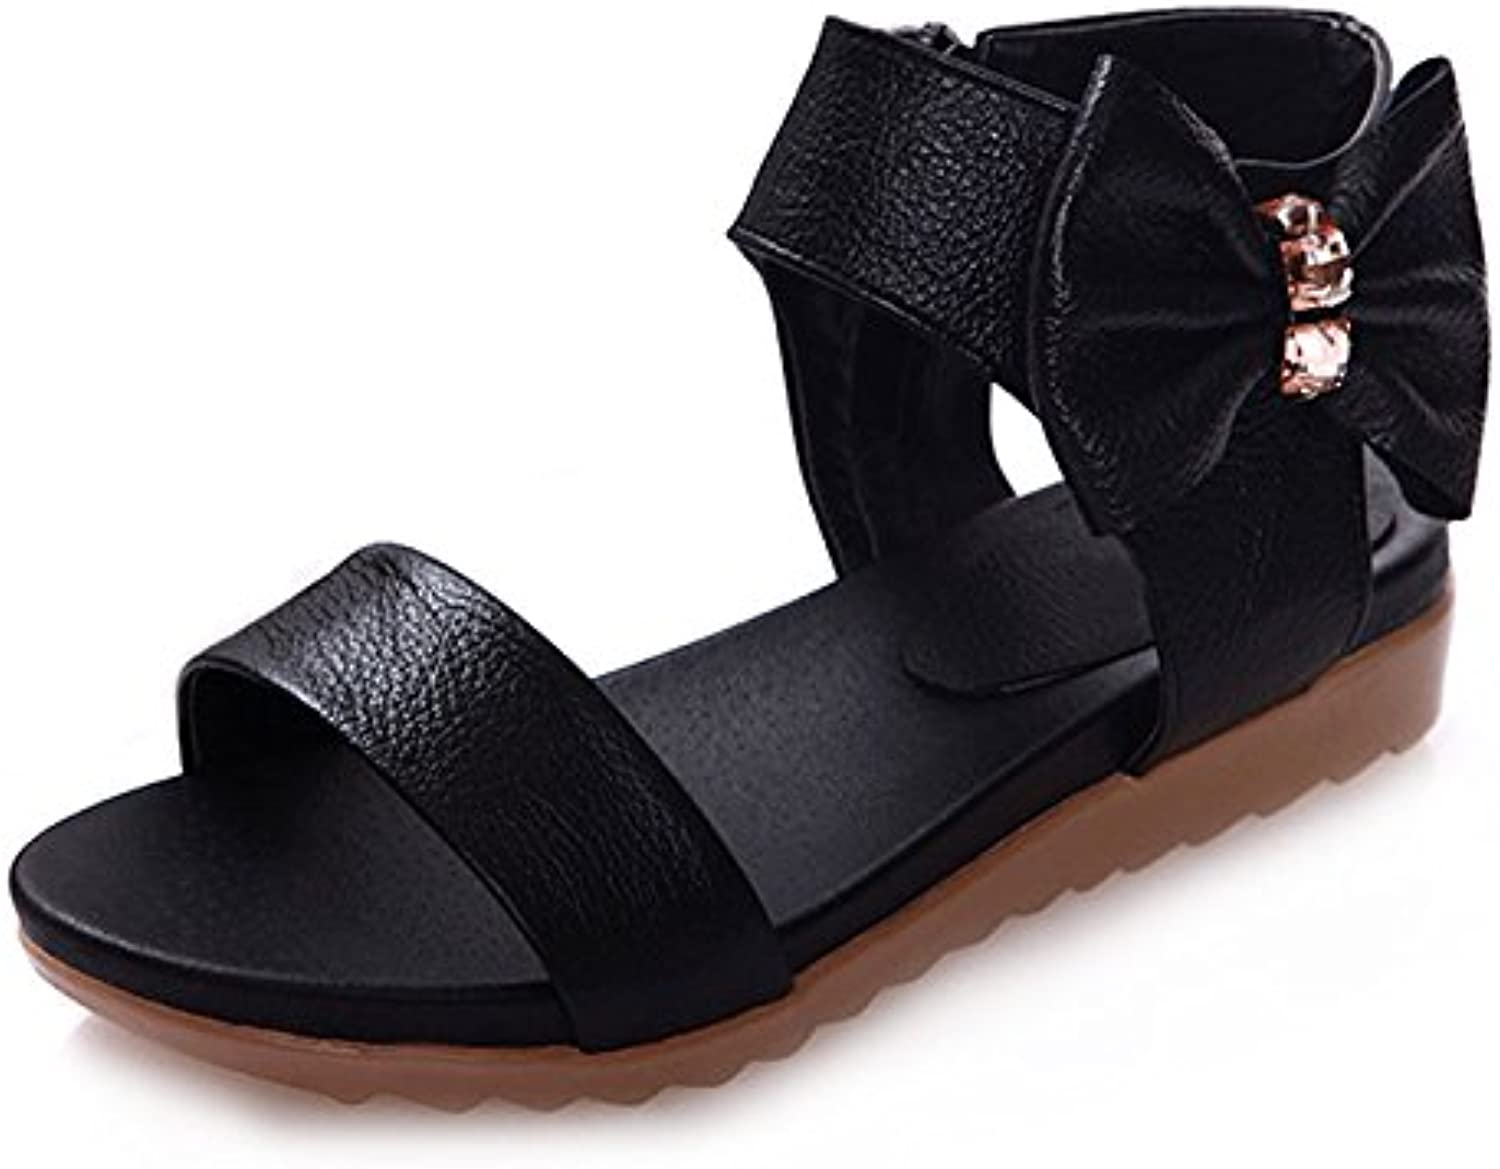 Dahanyi Stylish Summer Women Casual Flat Sandals 2018 Womens Soft Cow Leather Sandals Butterfly-Knot Summer Flat shoes Woman Black White